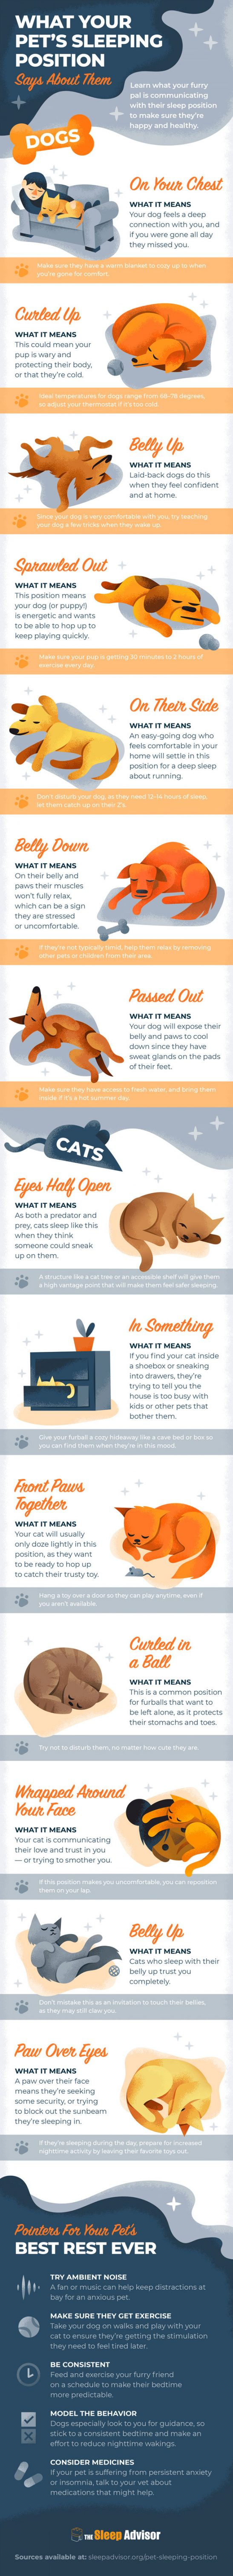 infographic about dog and cat sleeping positions